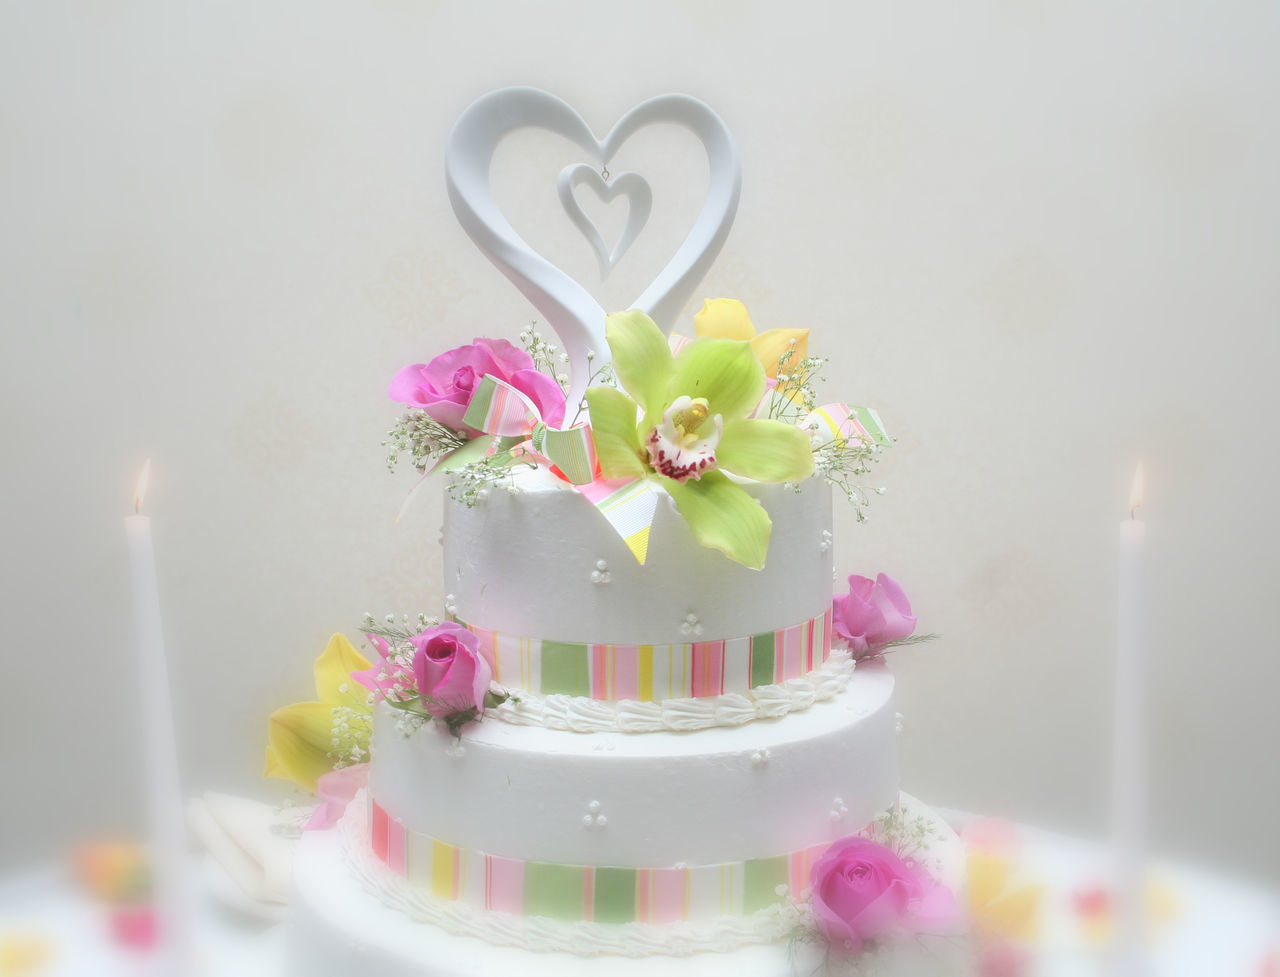 Cake Candles Colour Of Life Decoration Flower Fragility Freshness Hearts No People Rose - Flower Selective Focus Still Life Wedding Cake Millennial Pink